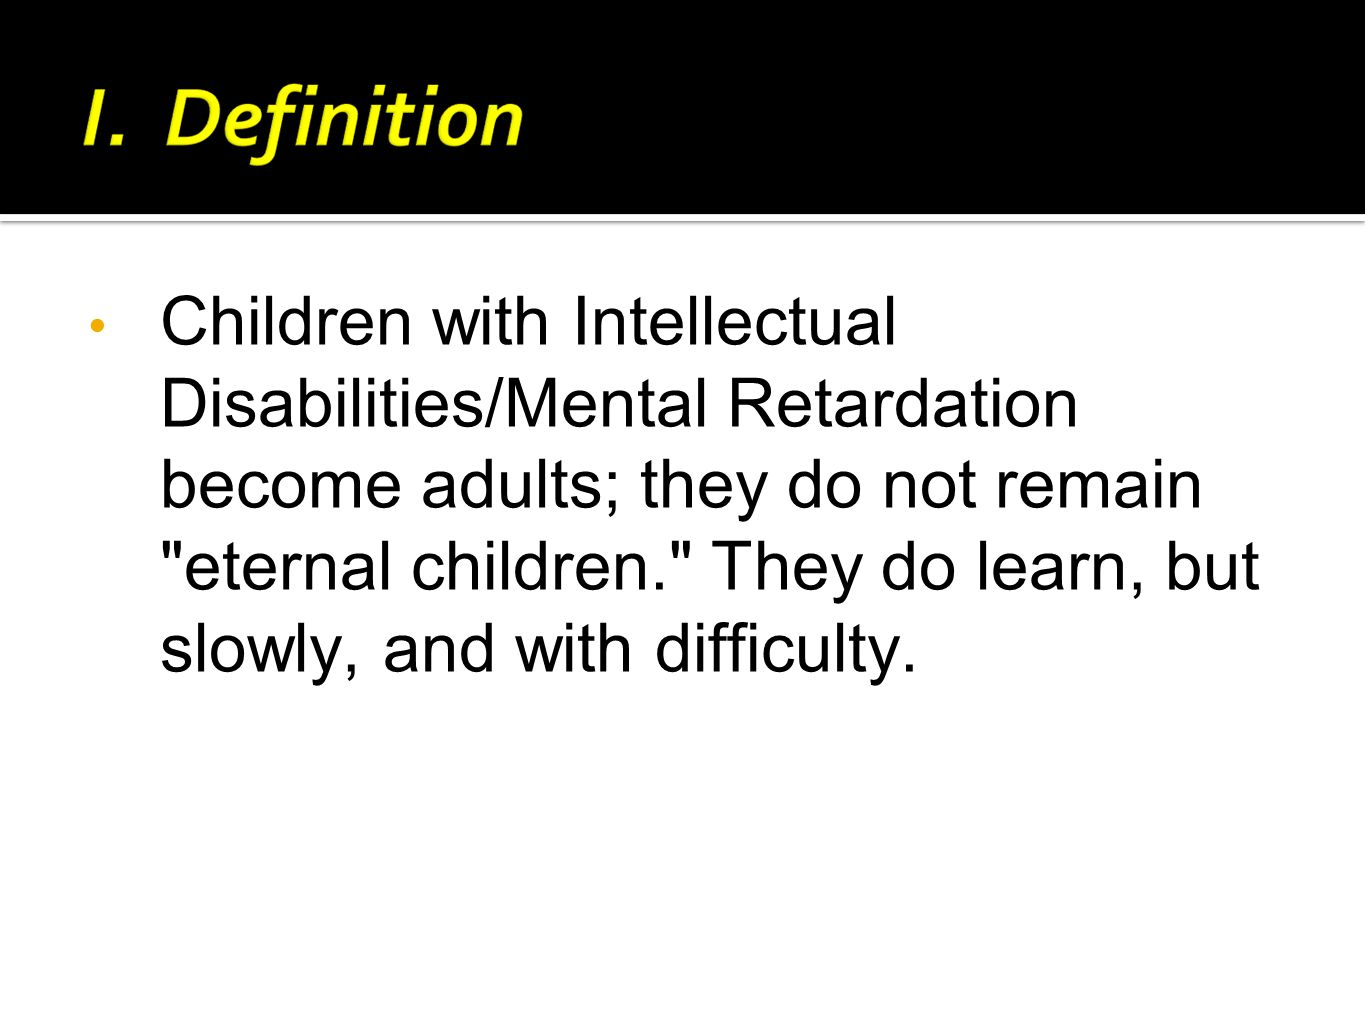 Children with Intellectual Disabilities/Mental Retardation become adults; they do not remain eternal children. They do learn, but slowly, and with difficulty.